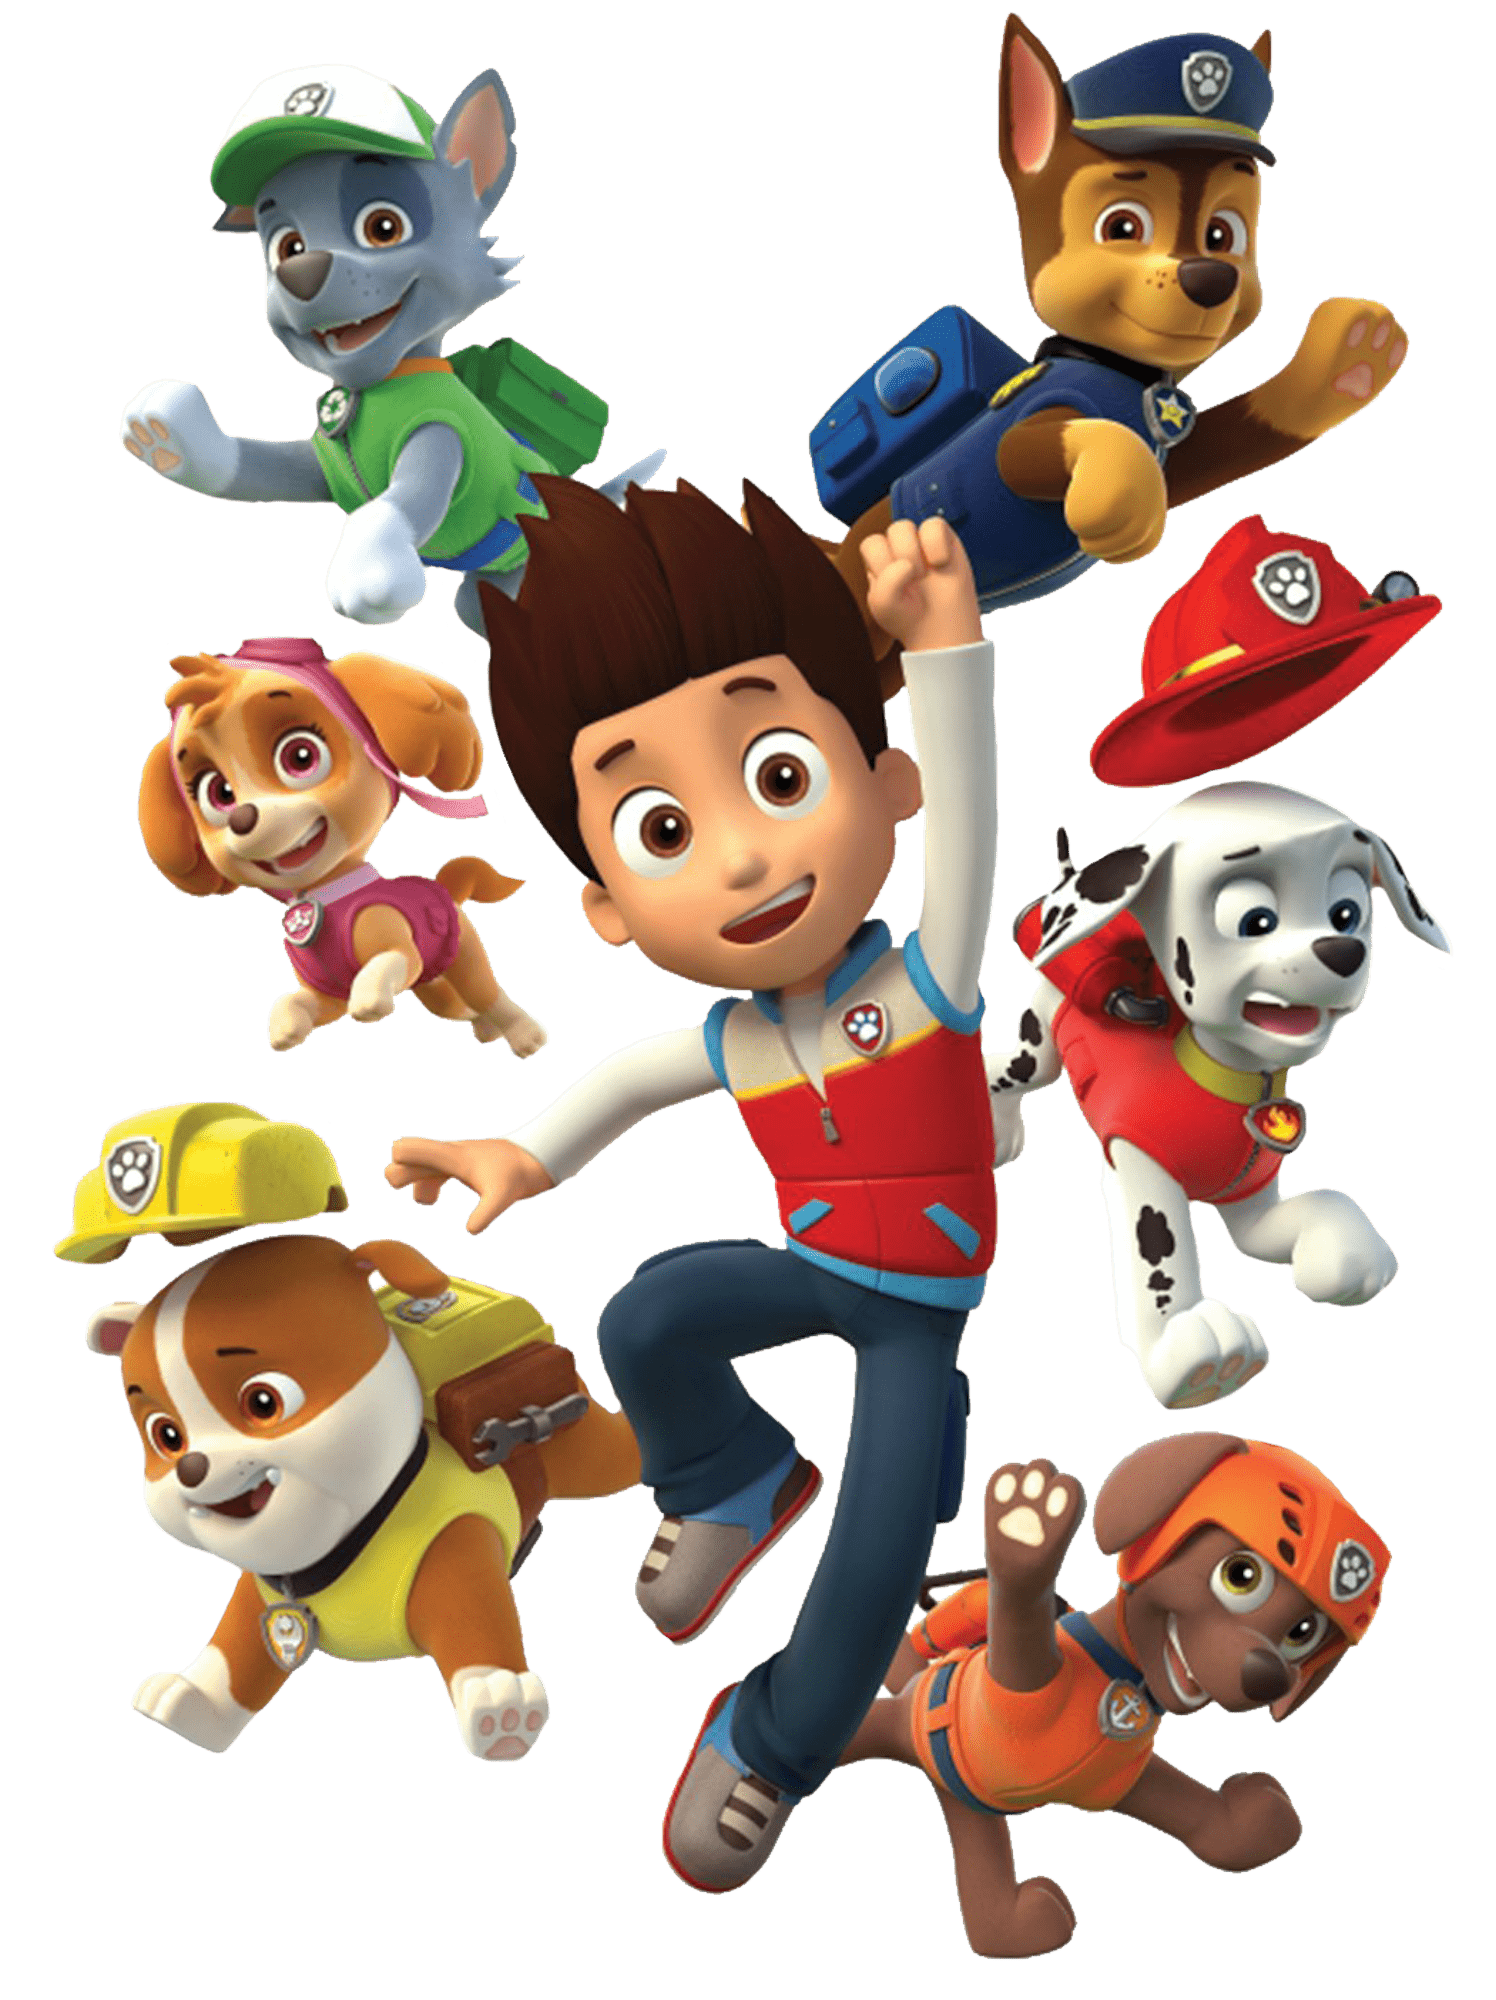 Paw Patrol Android Wallpapers - Wallpaper Cave